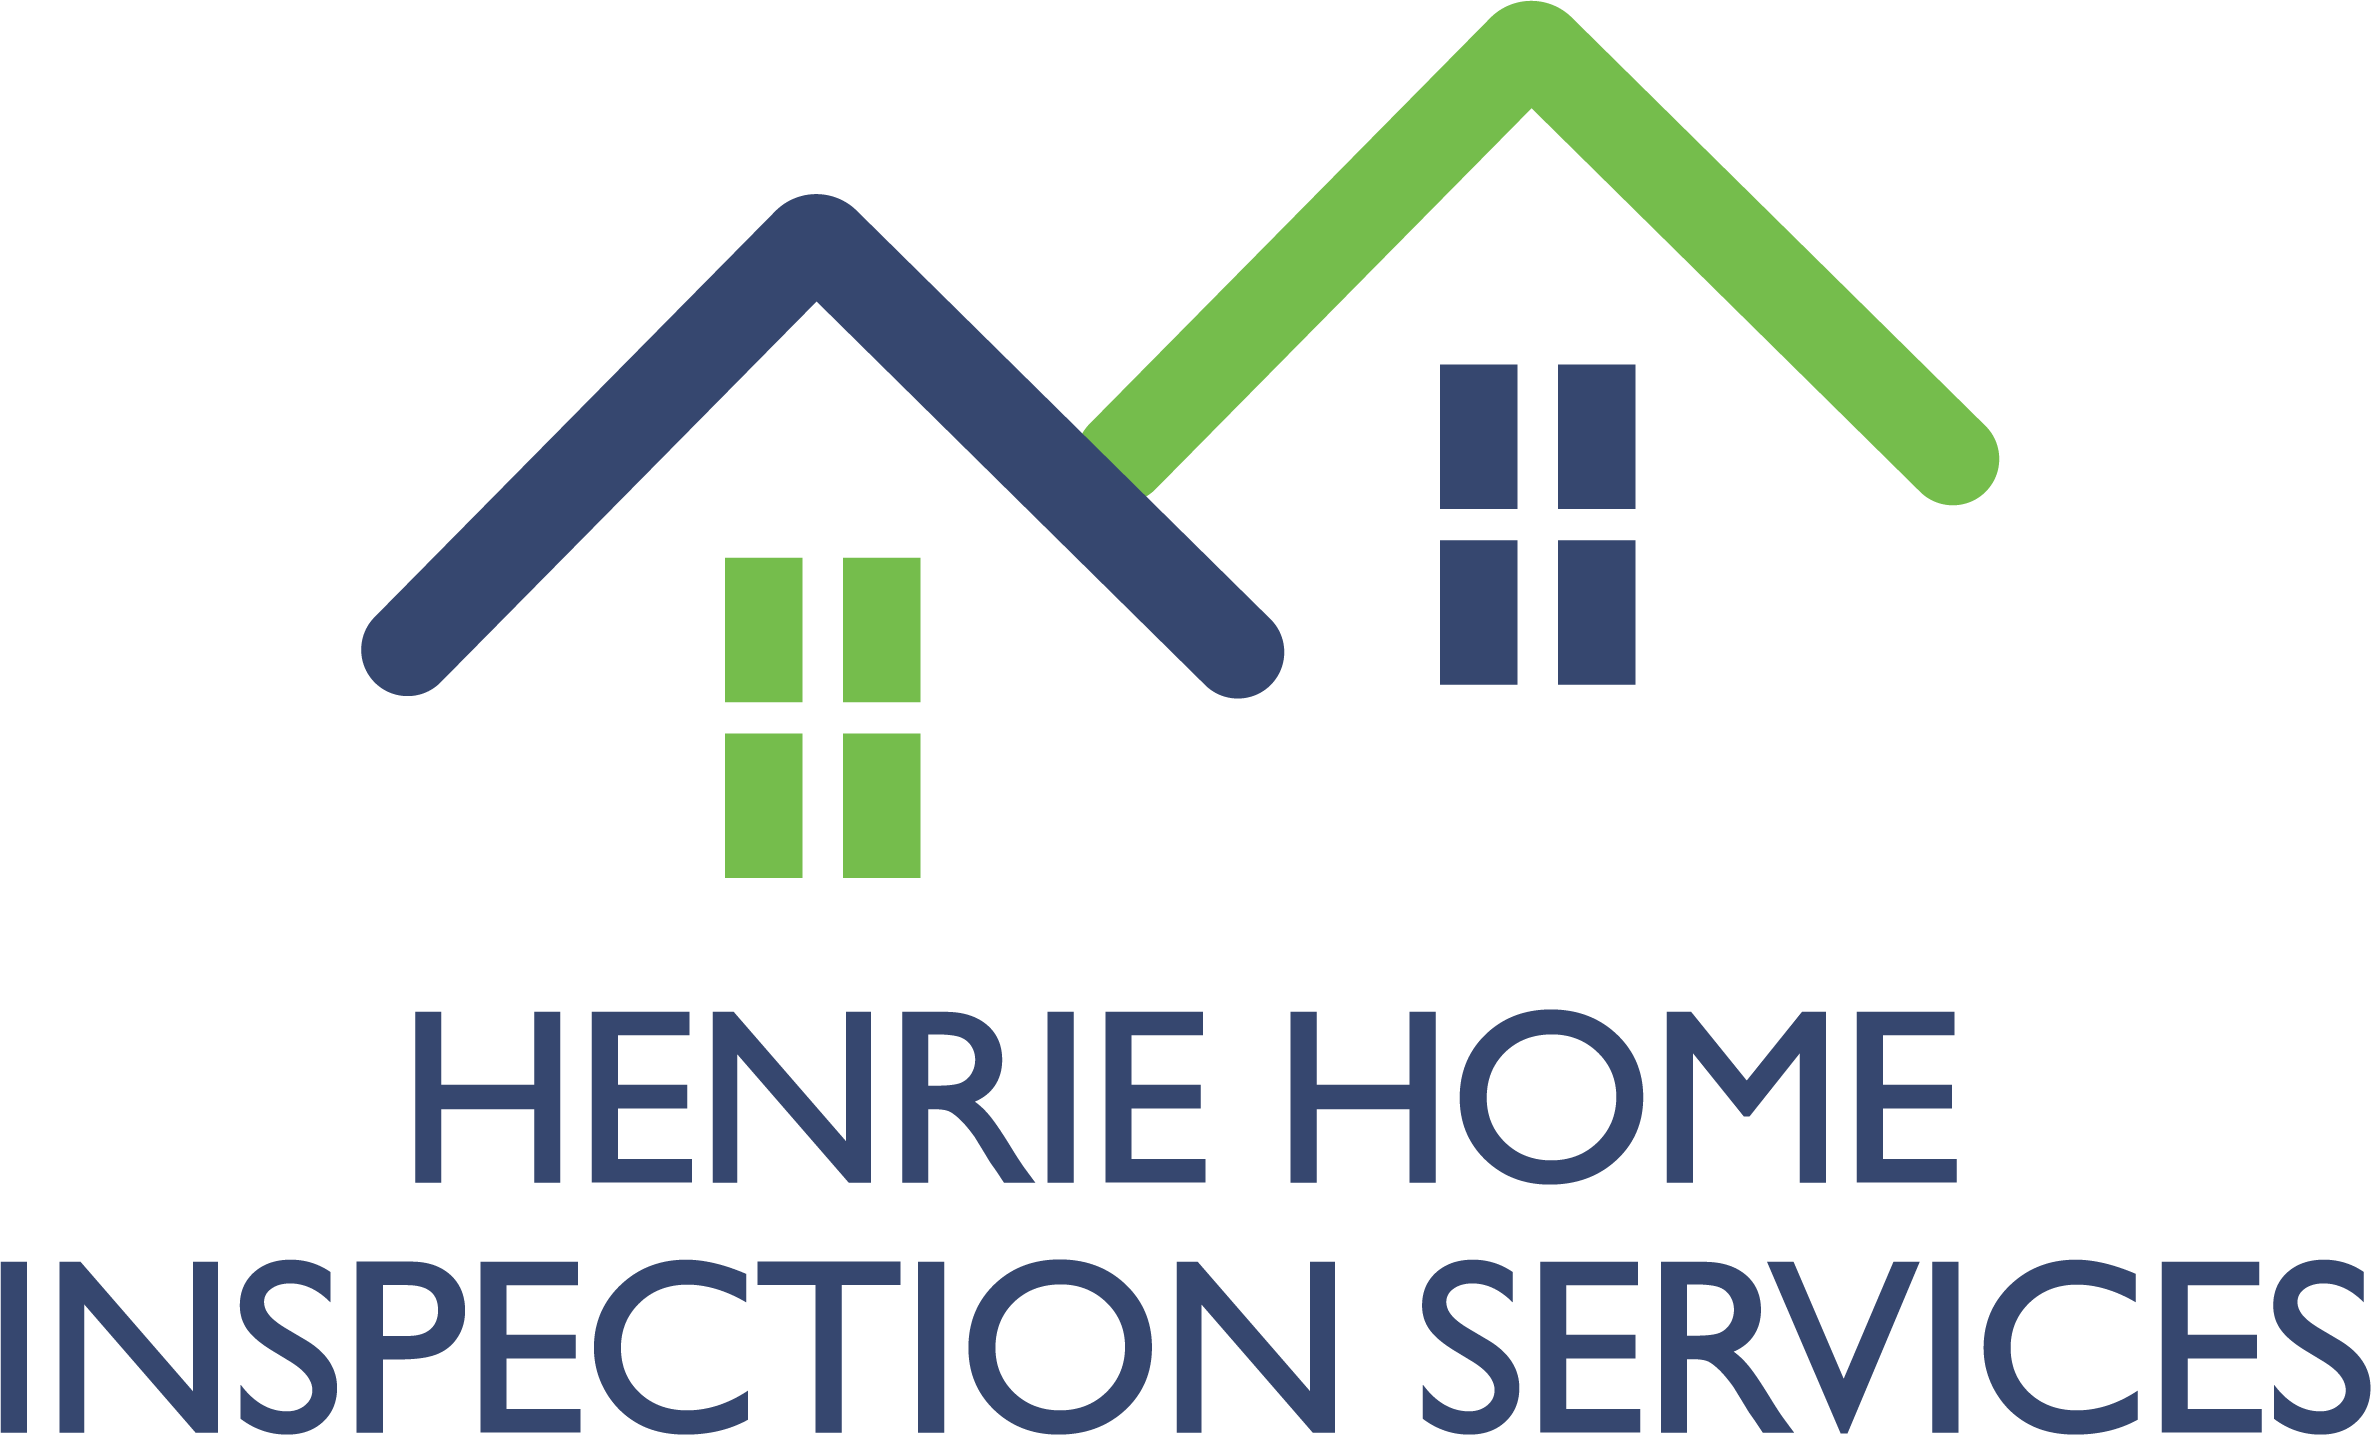 Henrie Home Inspection Services